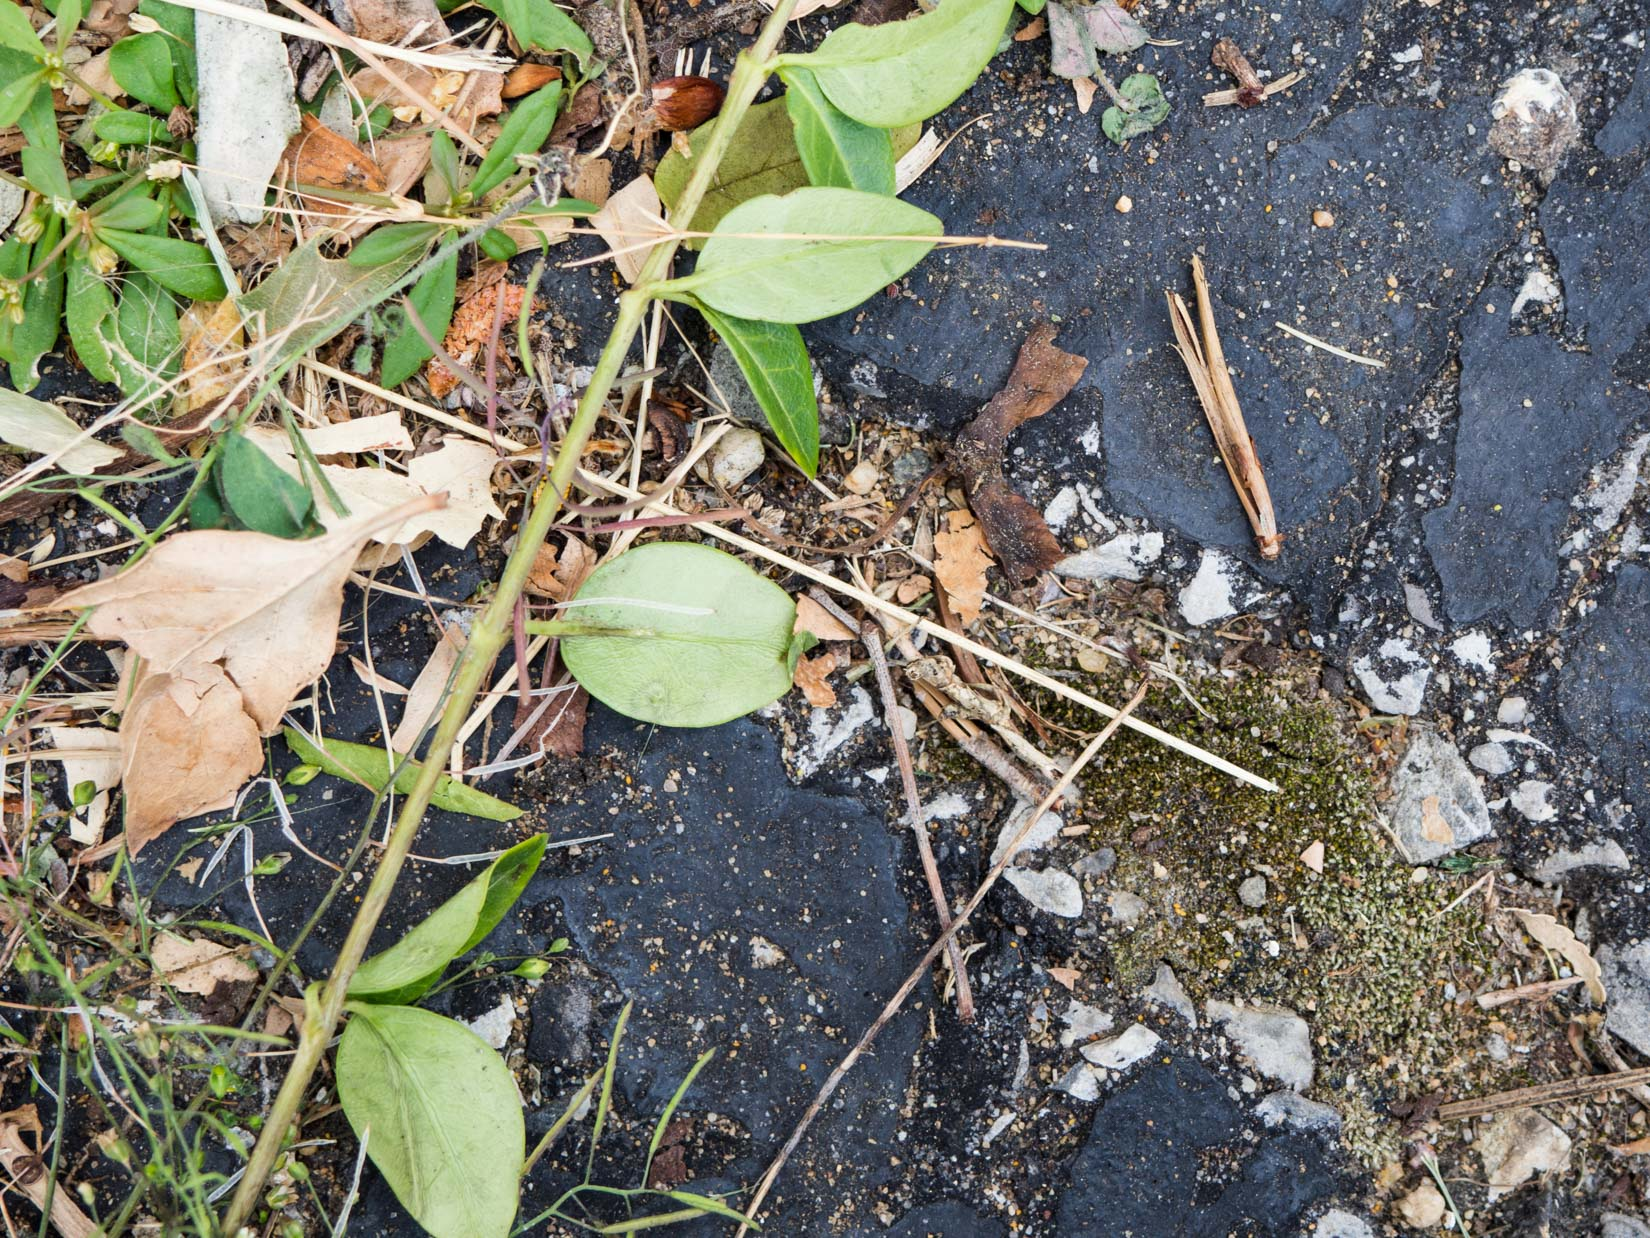 Leaves and Twigs on Concrete